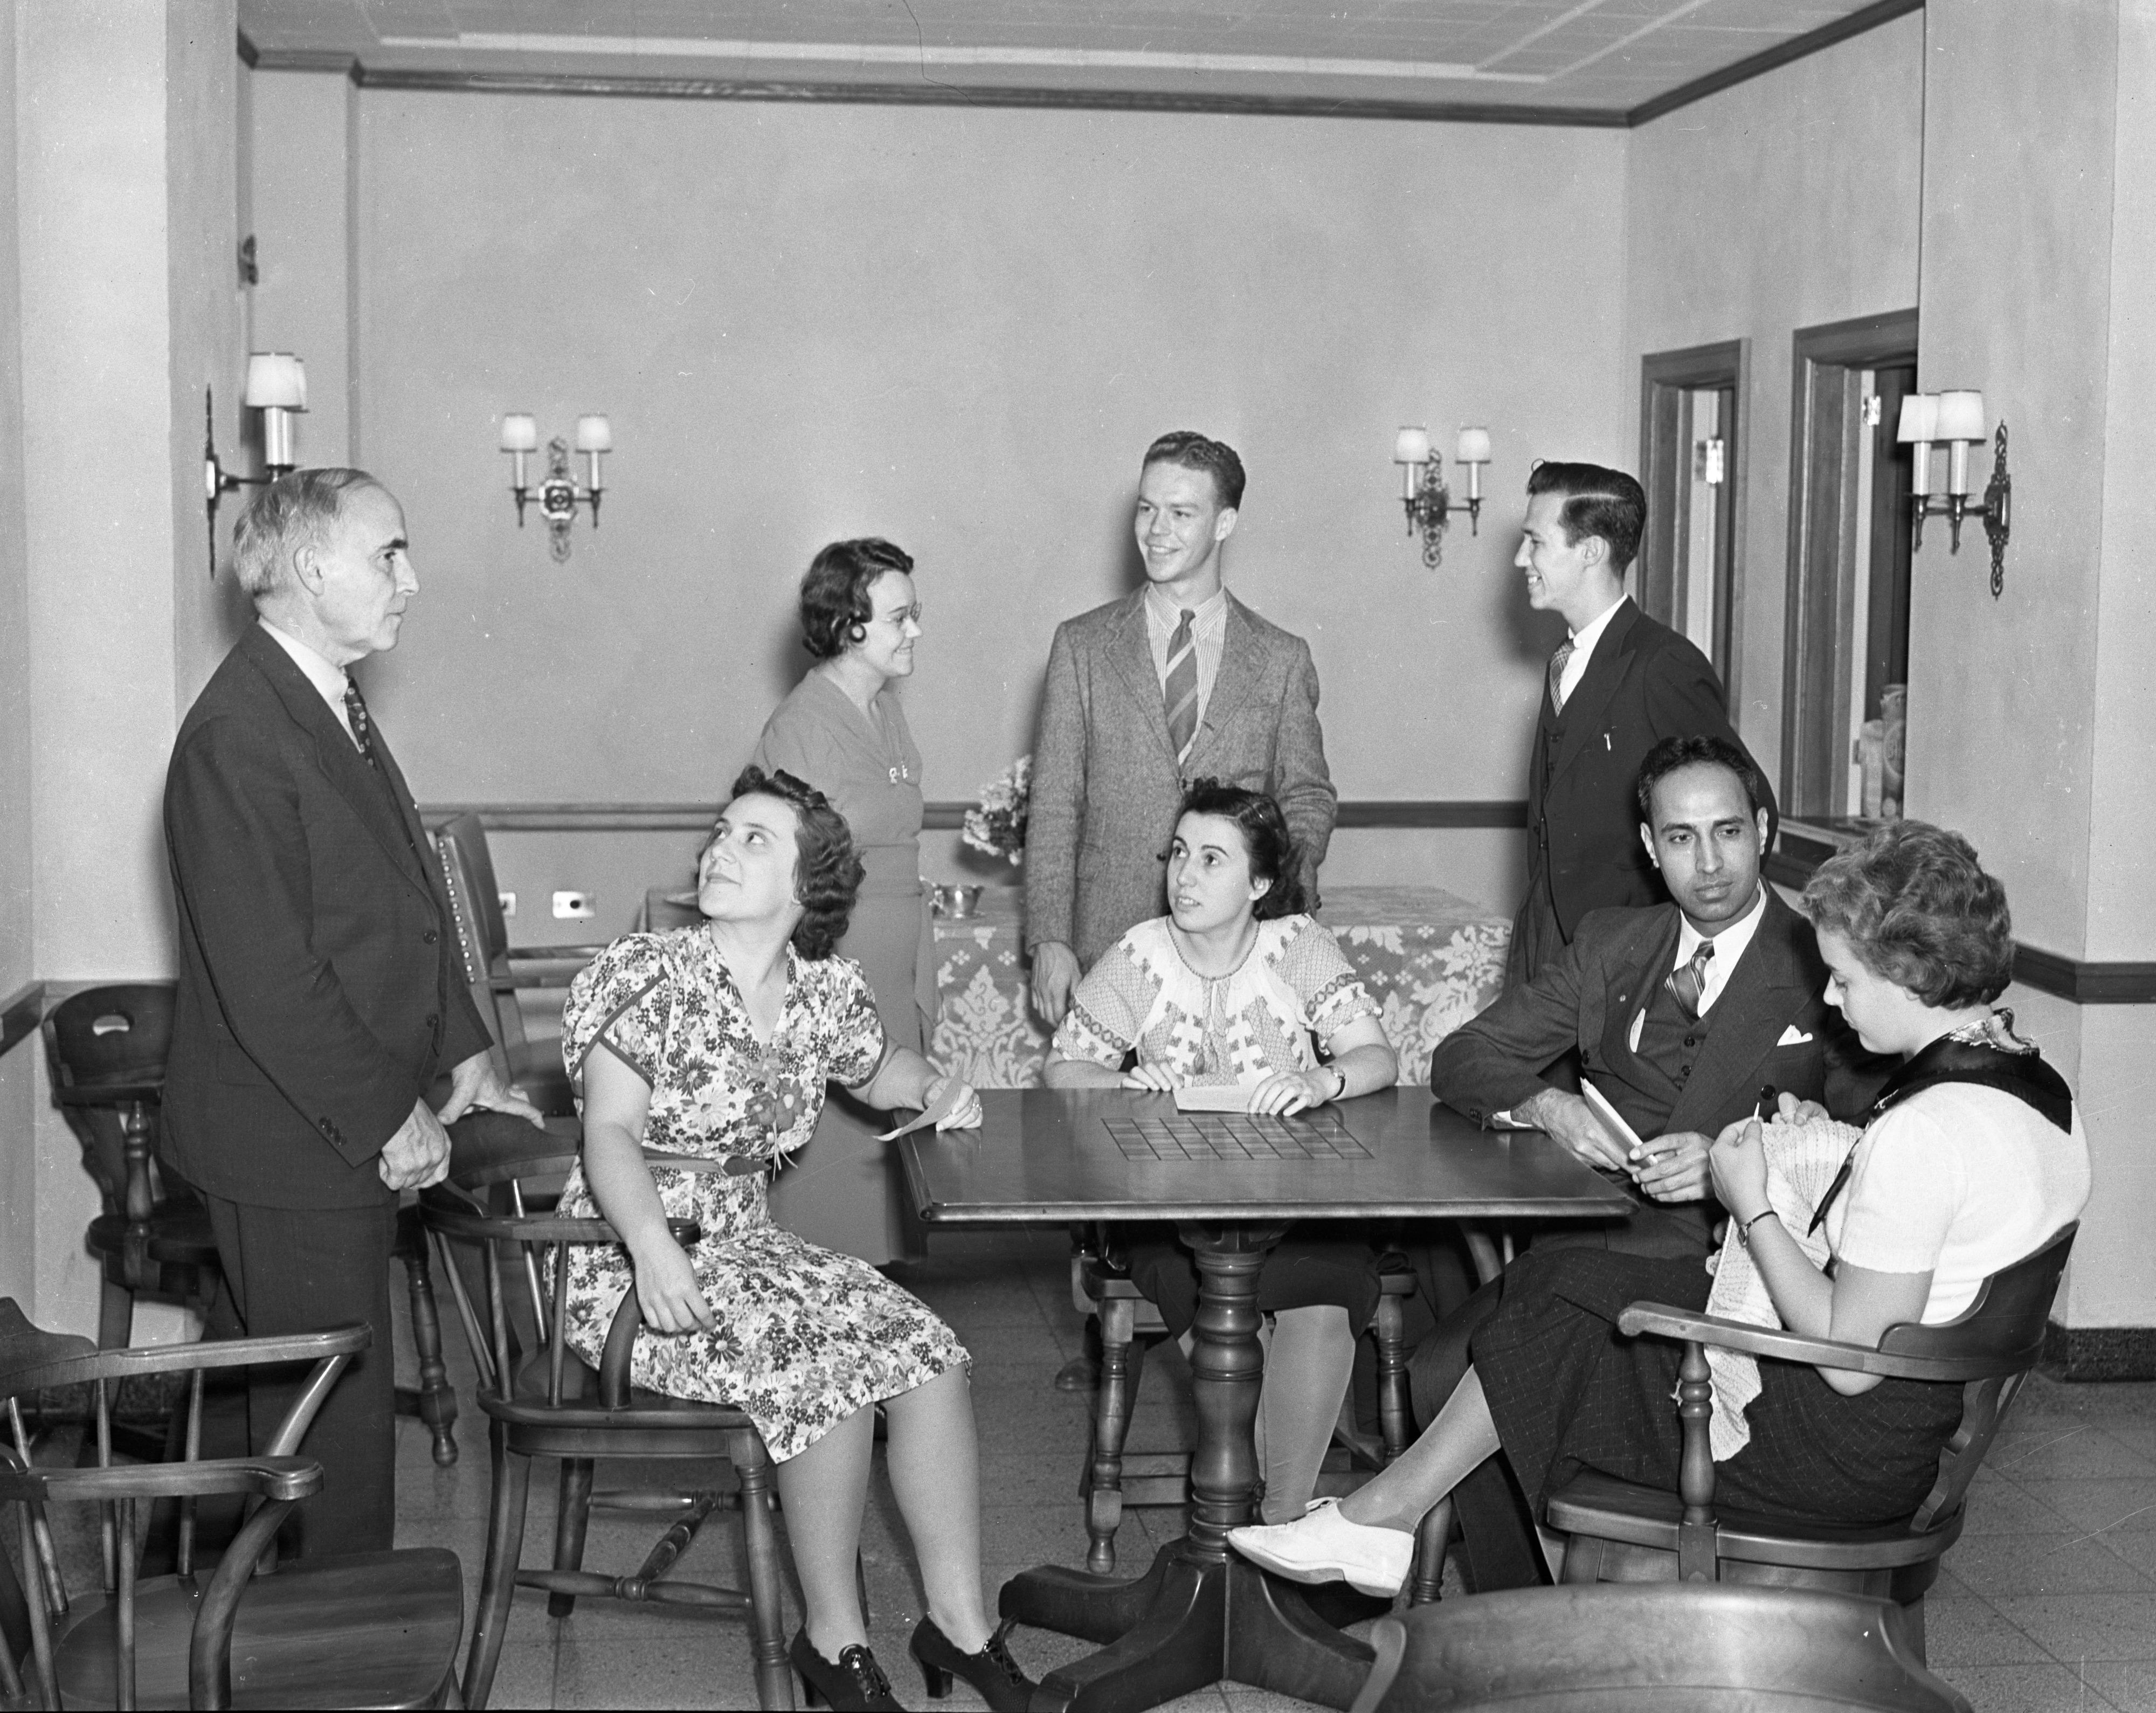 Students with Director J. Raleigh Nelson at the University of Michigan International Center, 1938 image